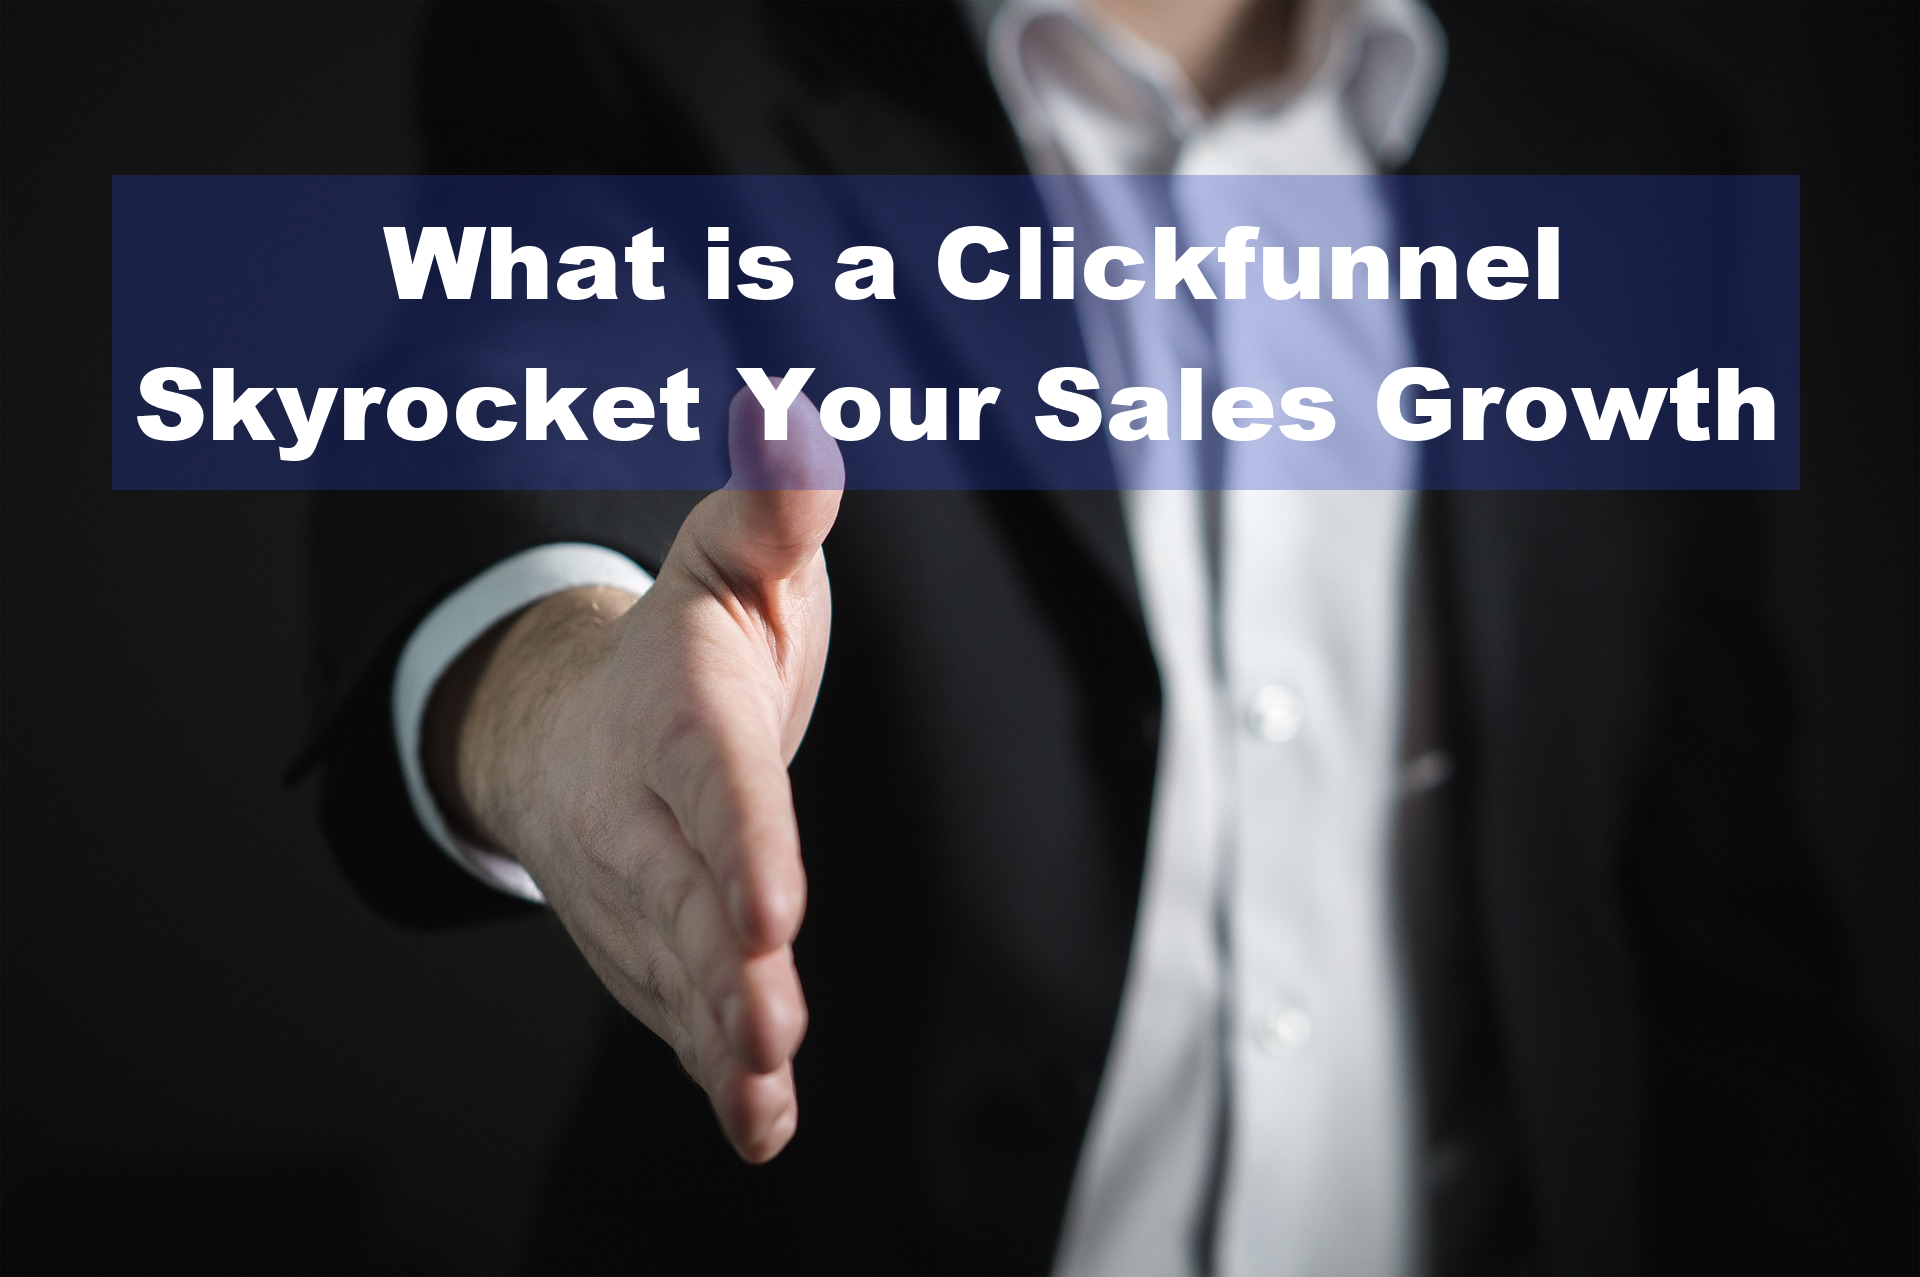 What is a Clickfunnel